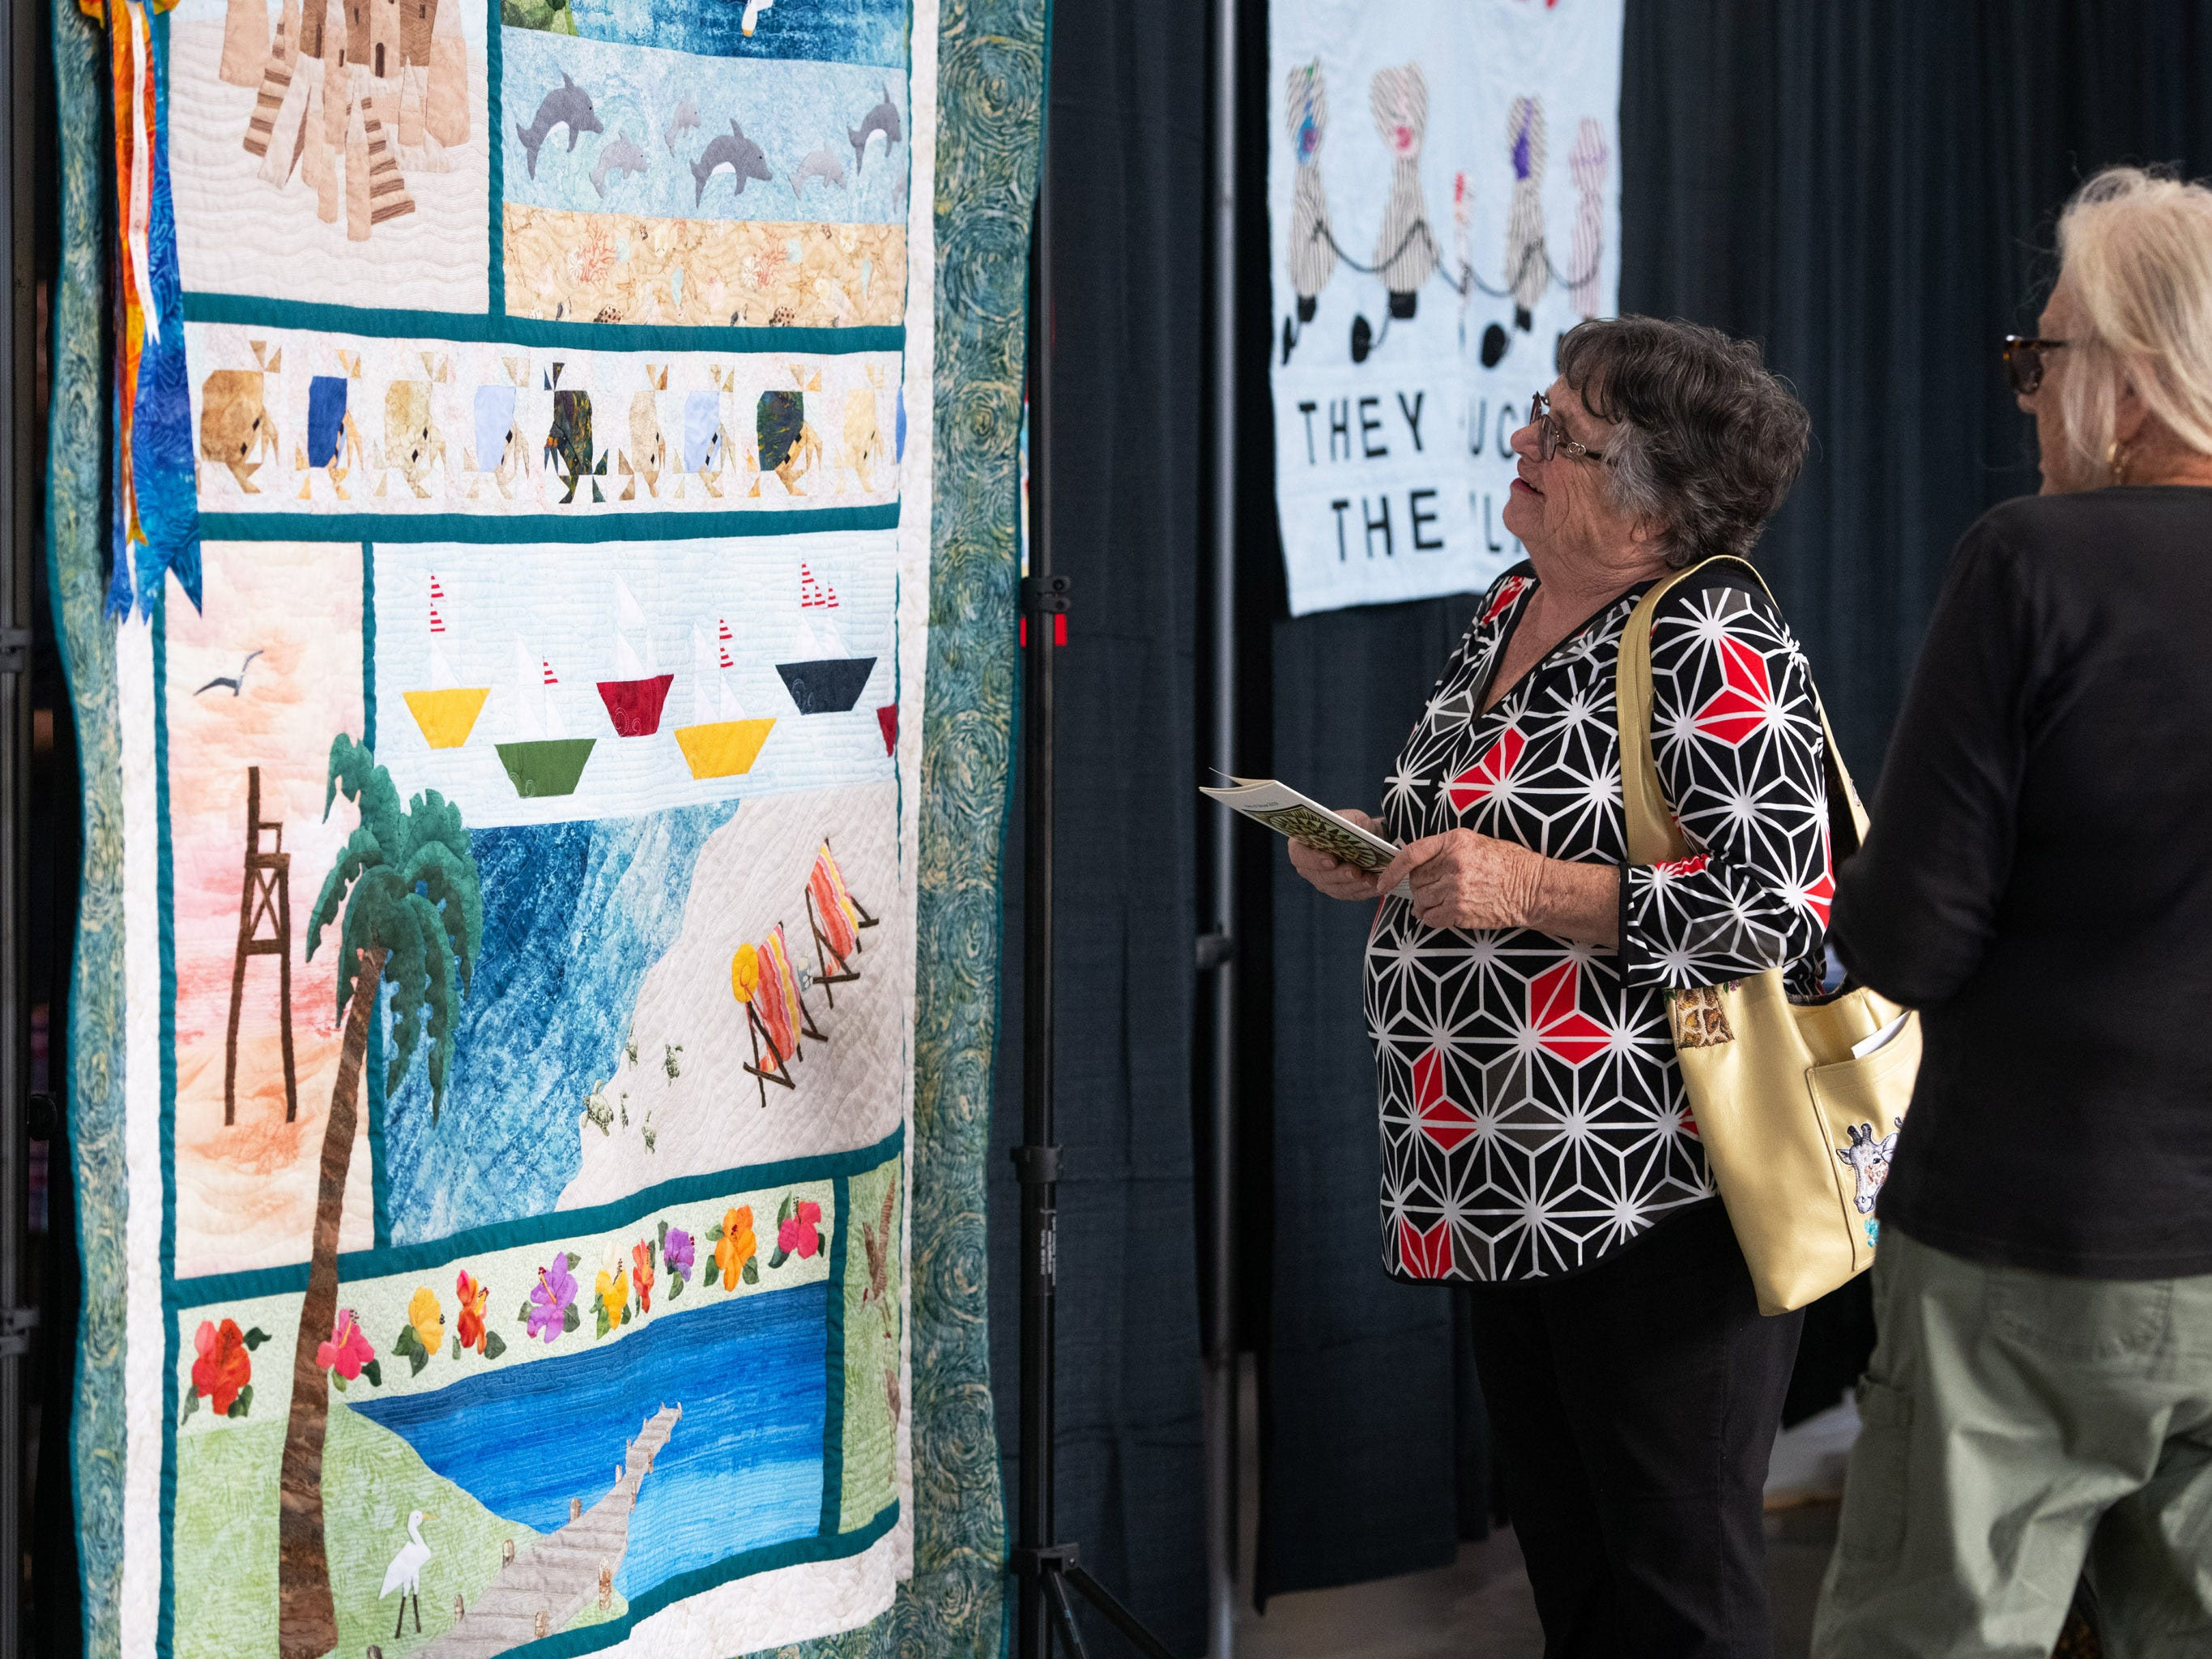 "Betty Hamer (left) and her friend Caryl Hunt, both of Sebastian, take a closer look at the Vero Beach Centennial Quilt named ""A Day at the Beach"" at the 40th annual Sunbonnet Sue Quilter's Guild Show at the Indian River County Fairgrounds on Friday, Feb. 8, 2019, in Vero Beach. ""There's a lot of time put into this one,"" said Hamer of the quilt, adding, ""It's just splendid."" The show continues 10 a.m. to 4 p.m. Saturday."